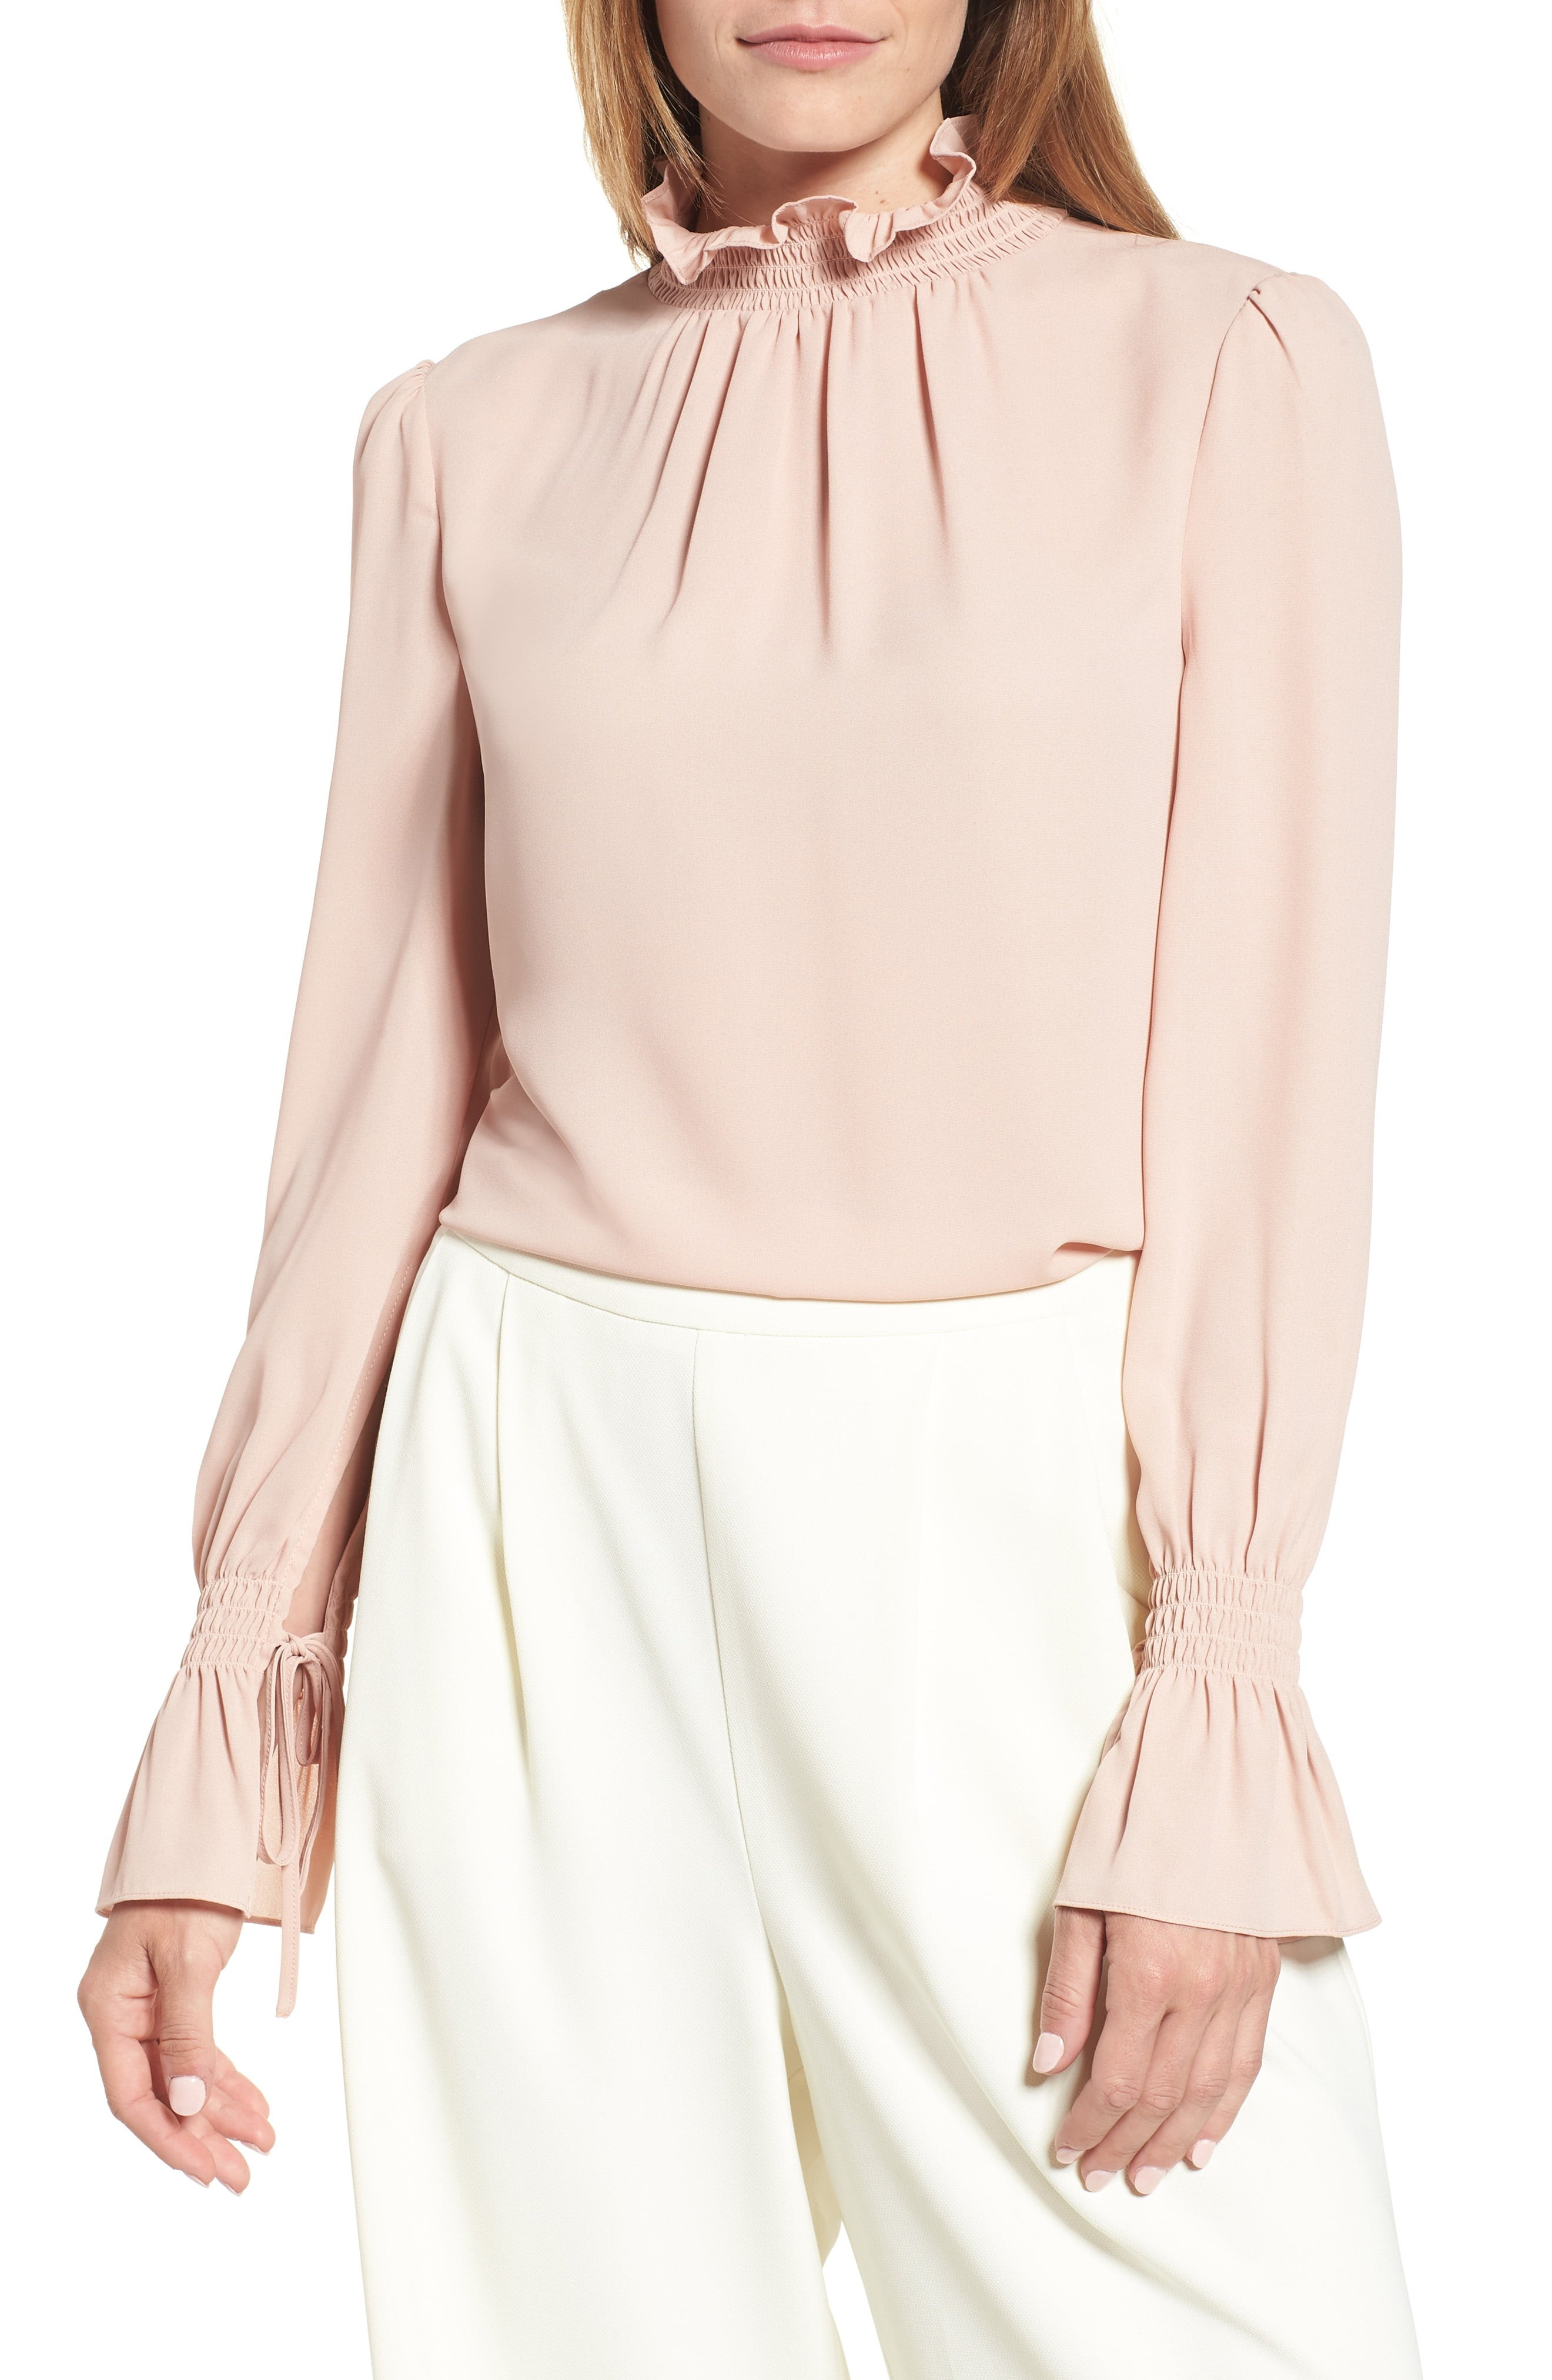 102011adcb60 Nordstrom Anniversary Sale 2018 Top Picks - Chicly Stylish